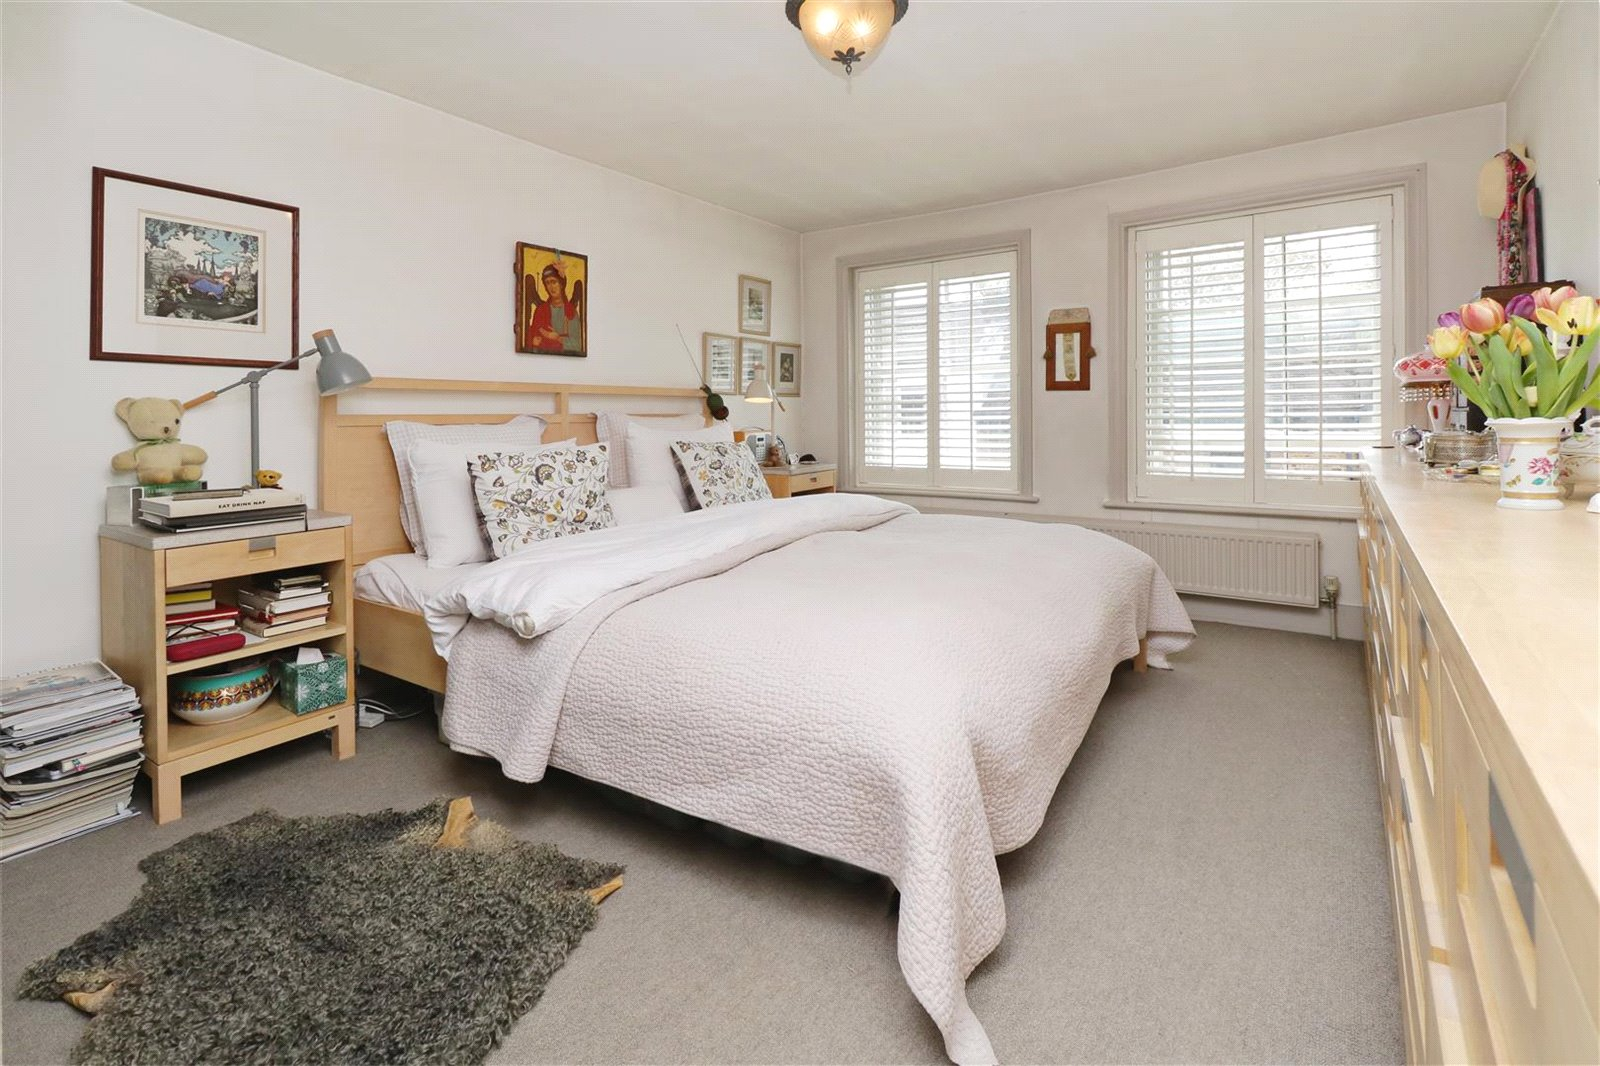 House for sale in Highgate, N6 5HX 1